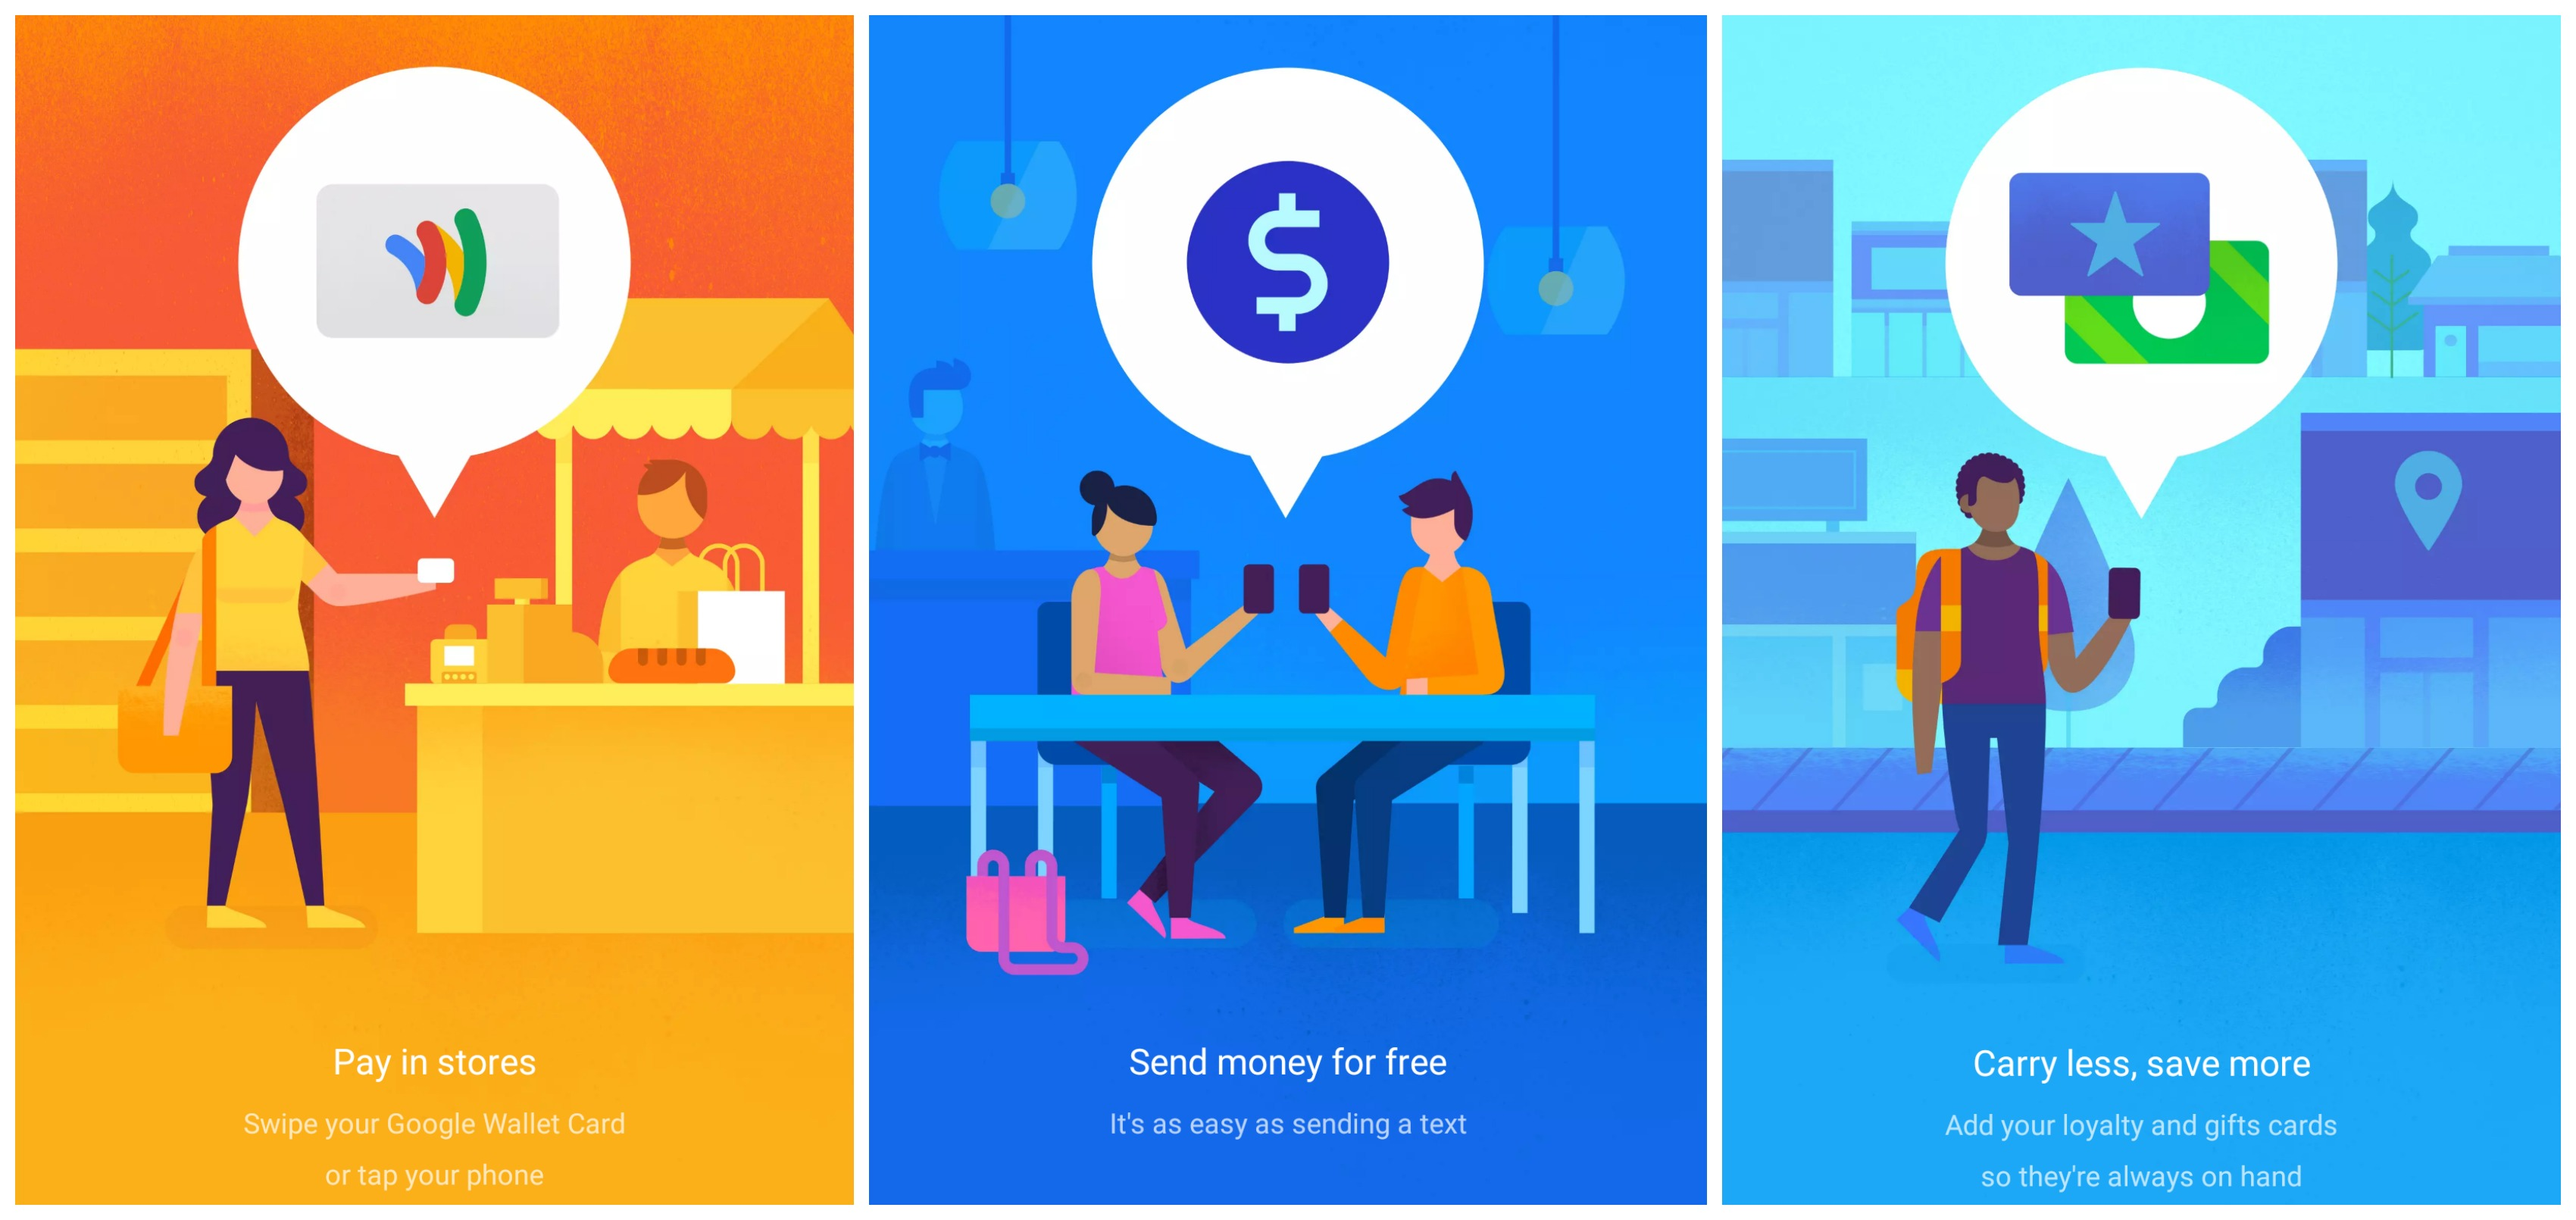 Download: New Google Wallet 7 0 with Material Design